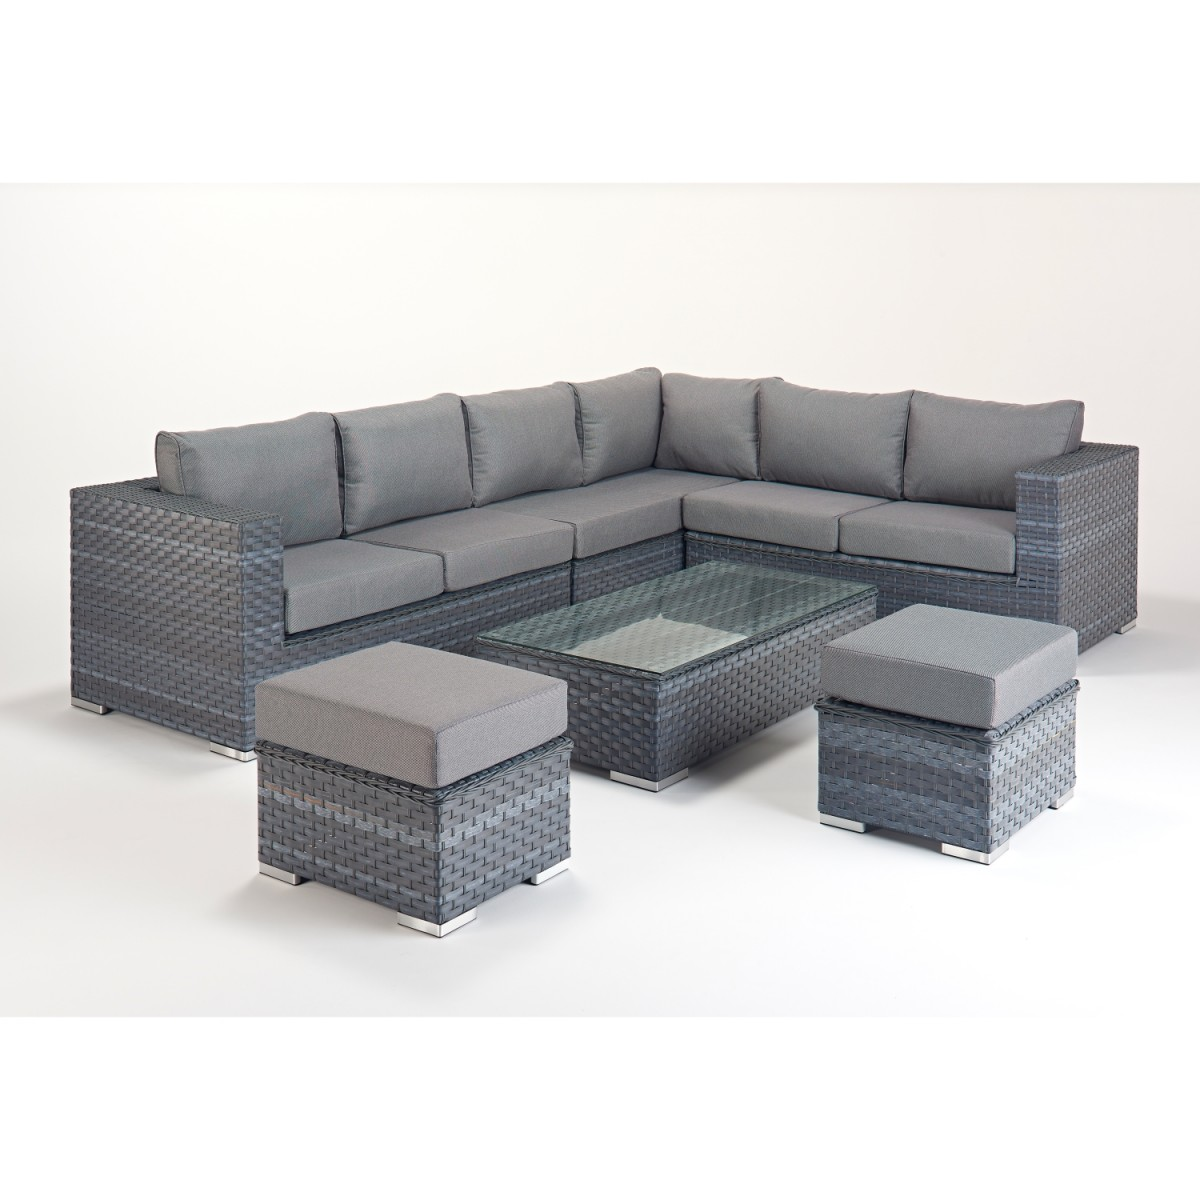 Alexandria Rattan Corner Sofa Reviews: Platinum Large Corner Sofa Set WGF-510 Right Hand